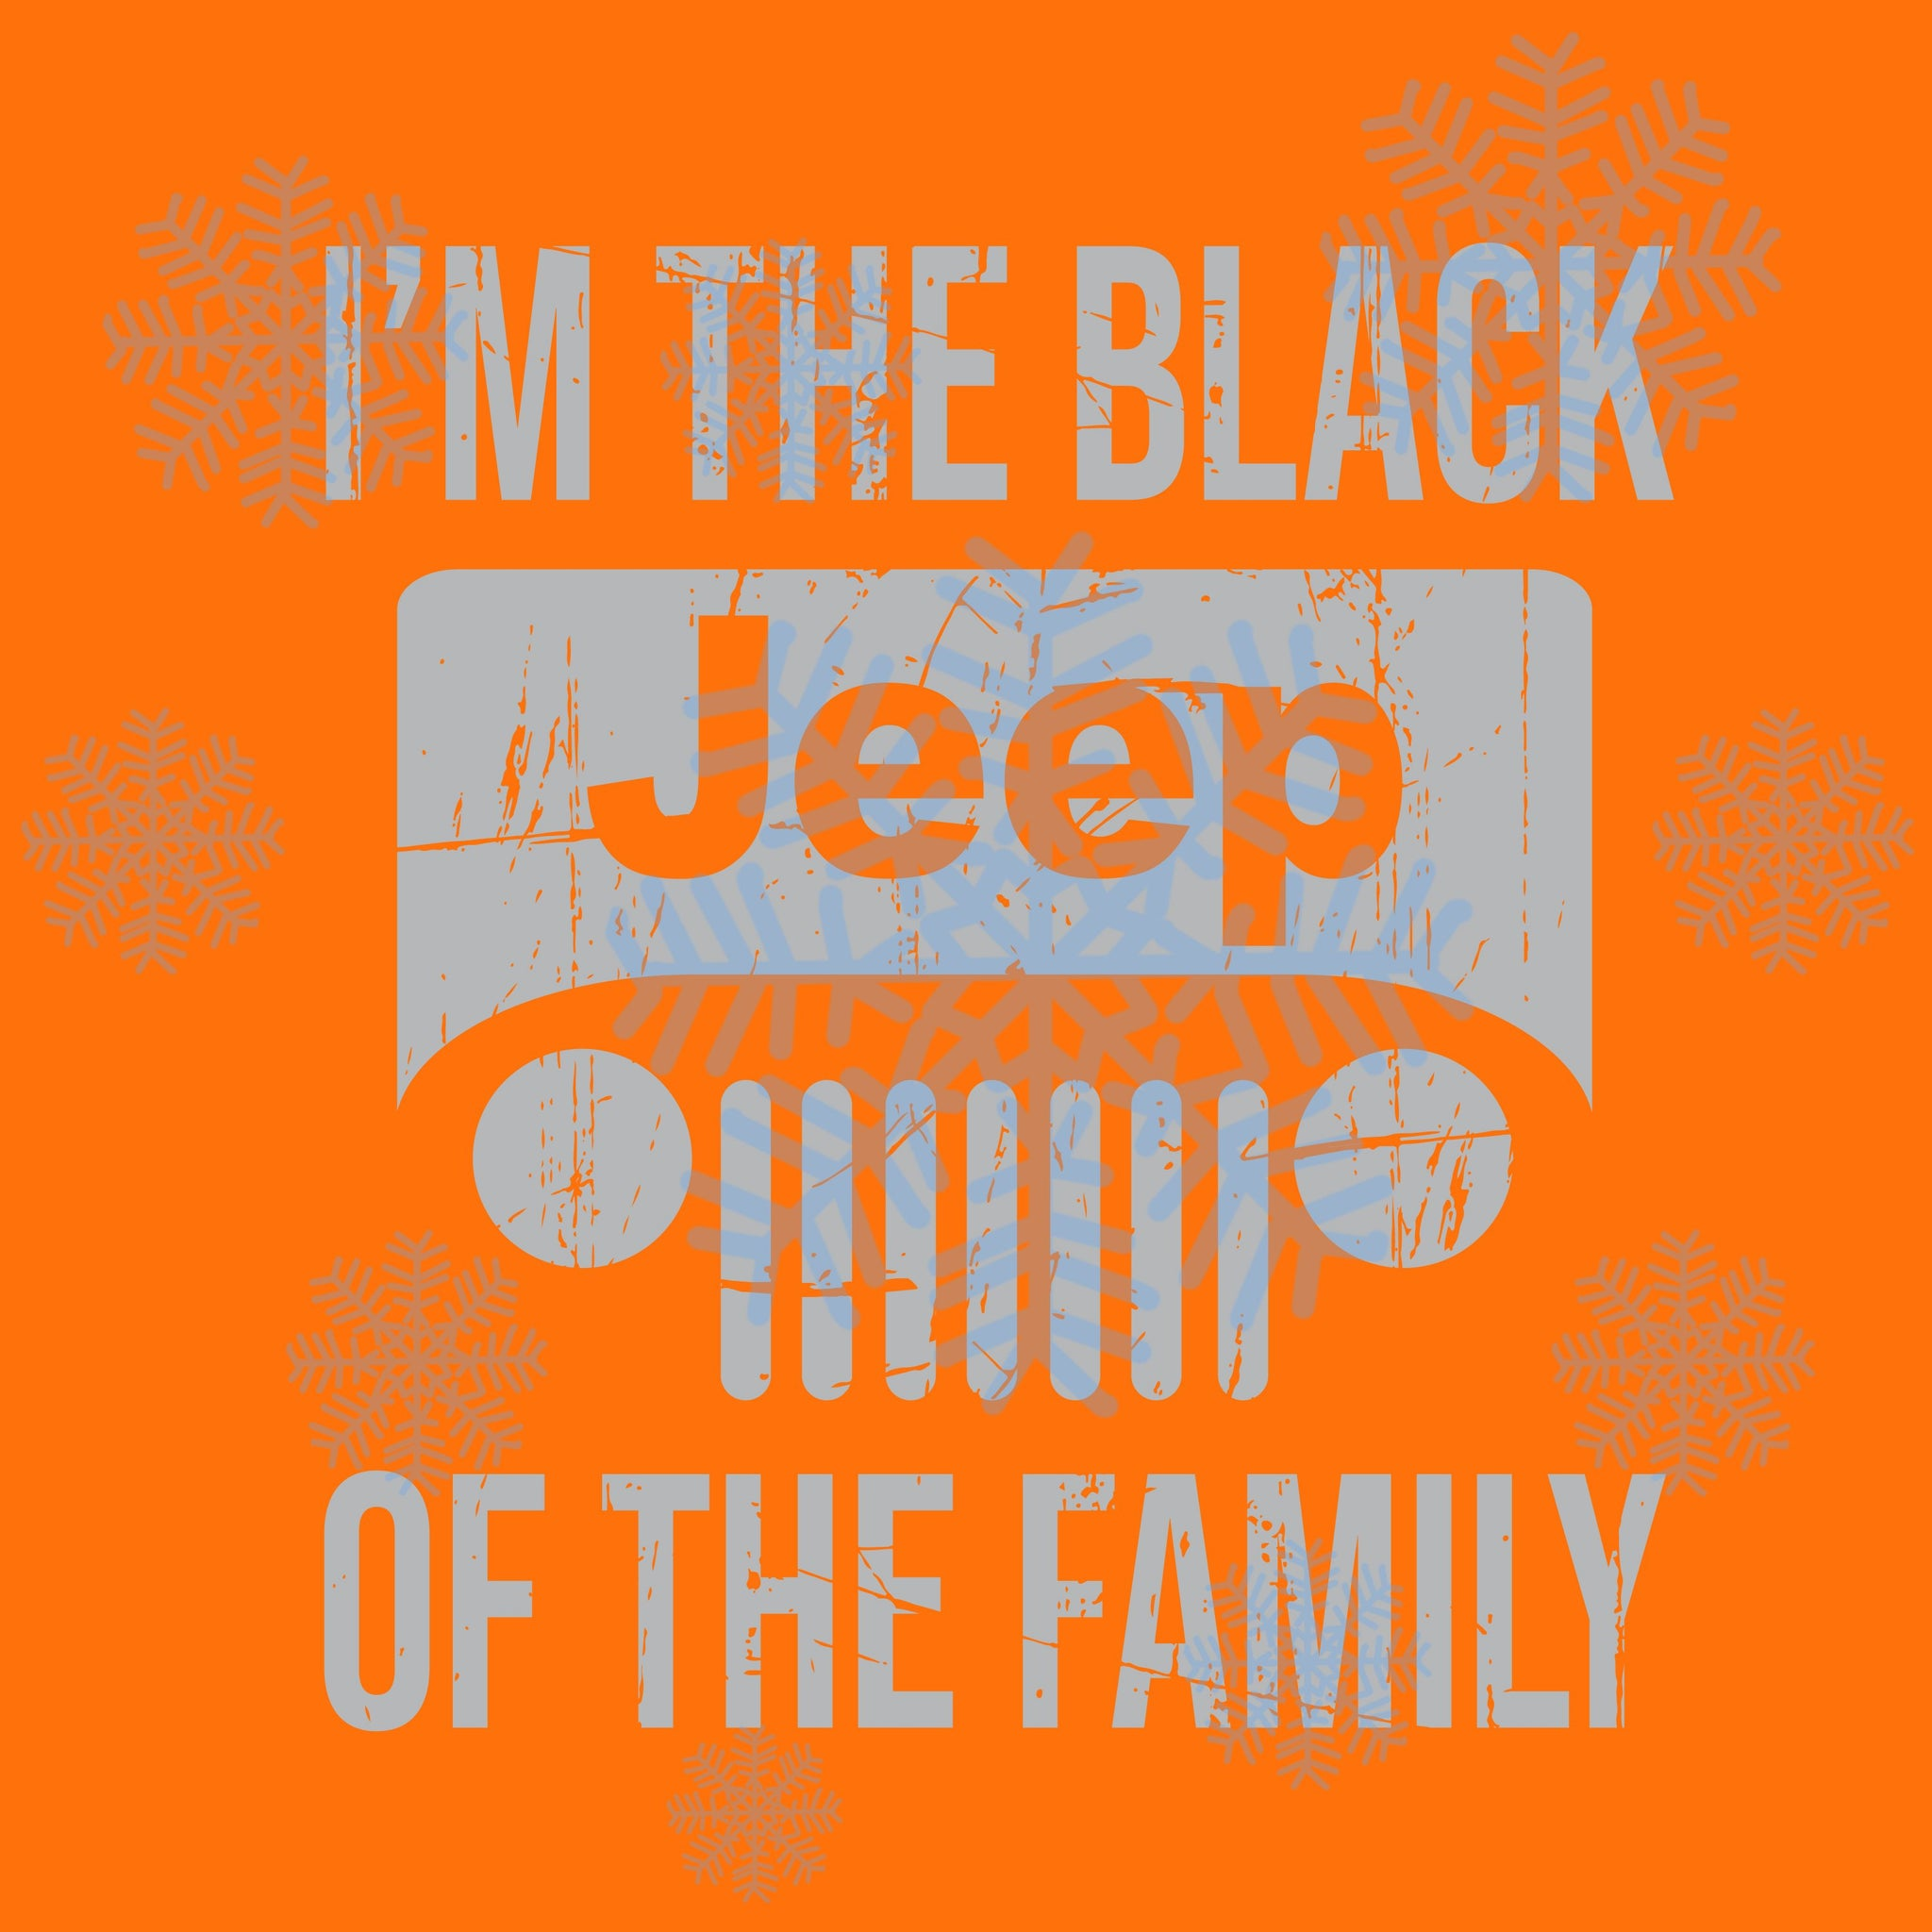 I'm the black jeep of the family,  jeep svg, jeep family, black jeep, funny jeep, jeep wrangler, jeep life, jeep shirt, jeep lover, gift for family,trending svg, Files For Silhouette, Files For Cricut, SVG, DXF, EPS, PNG, Instant Download